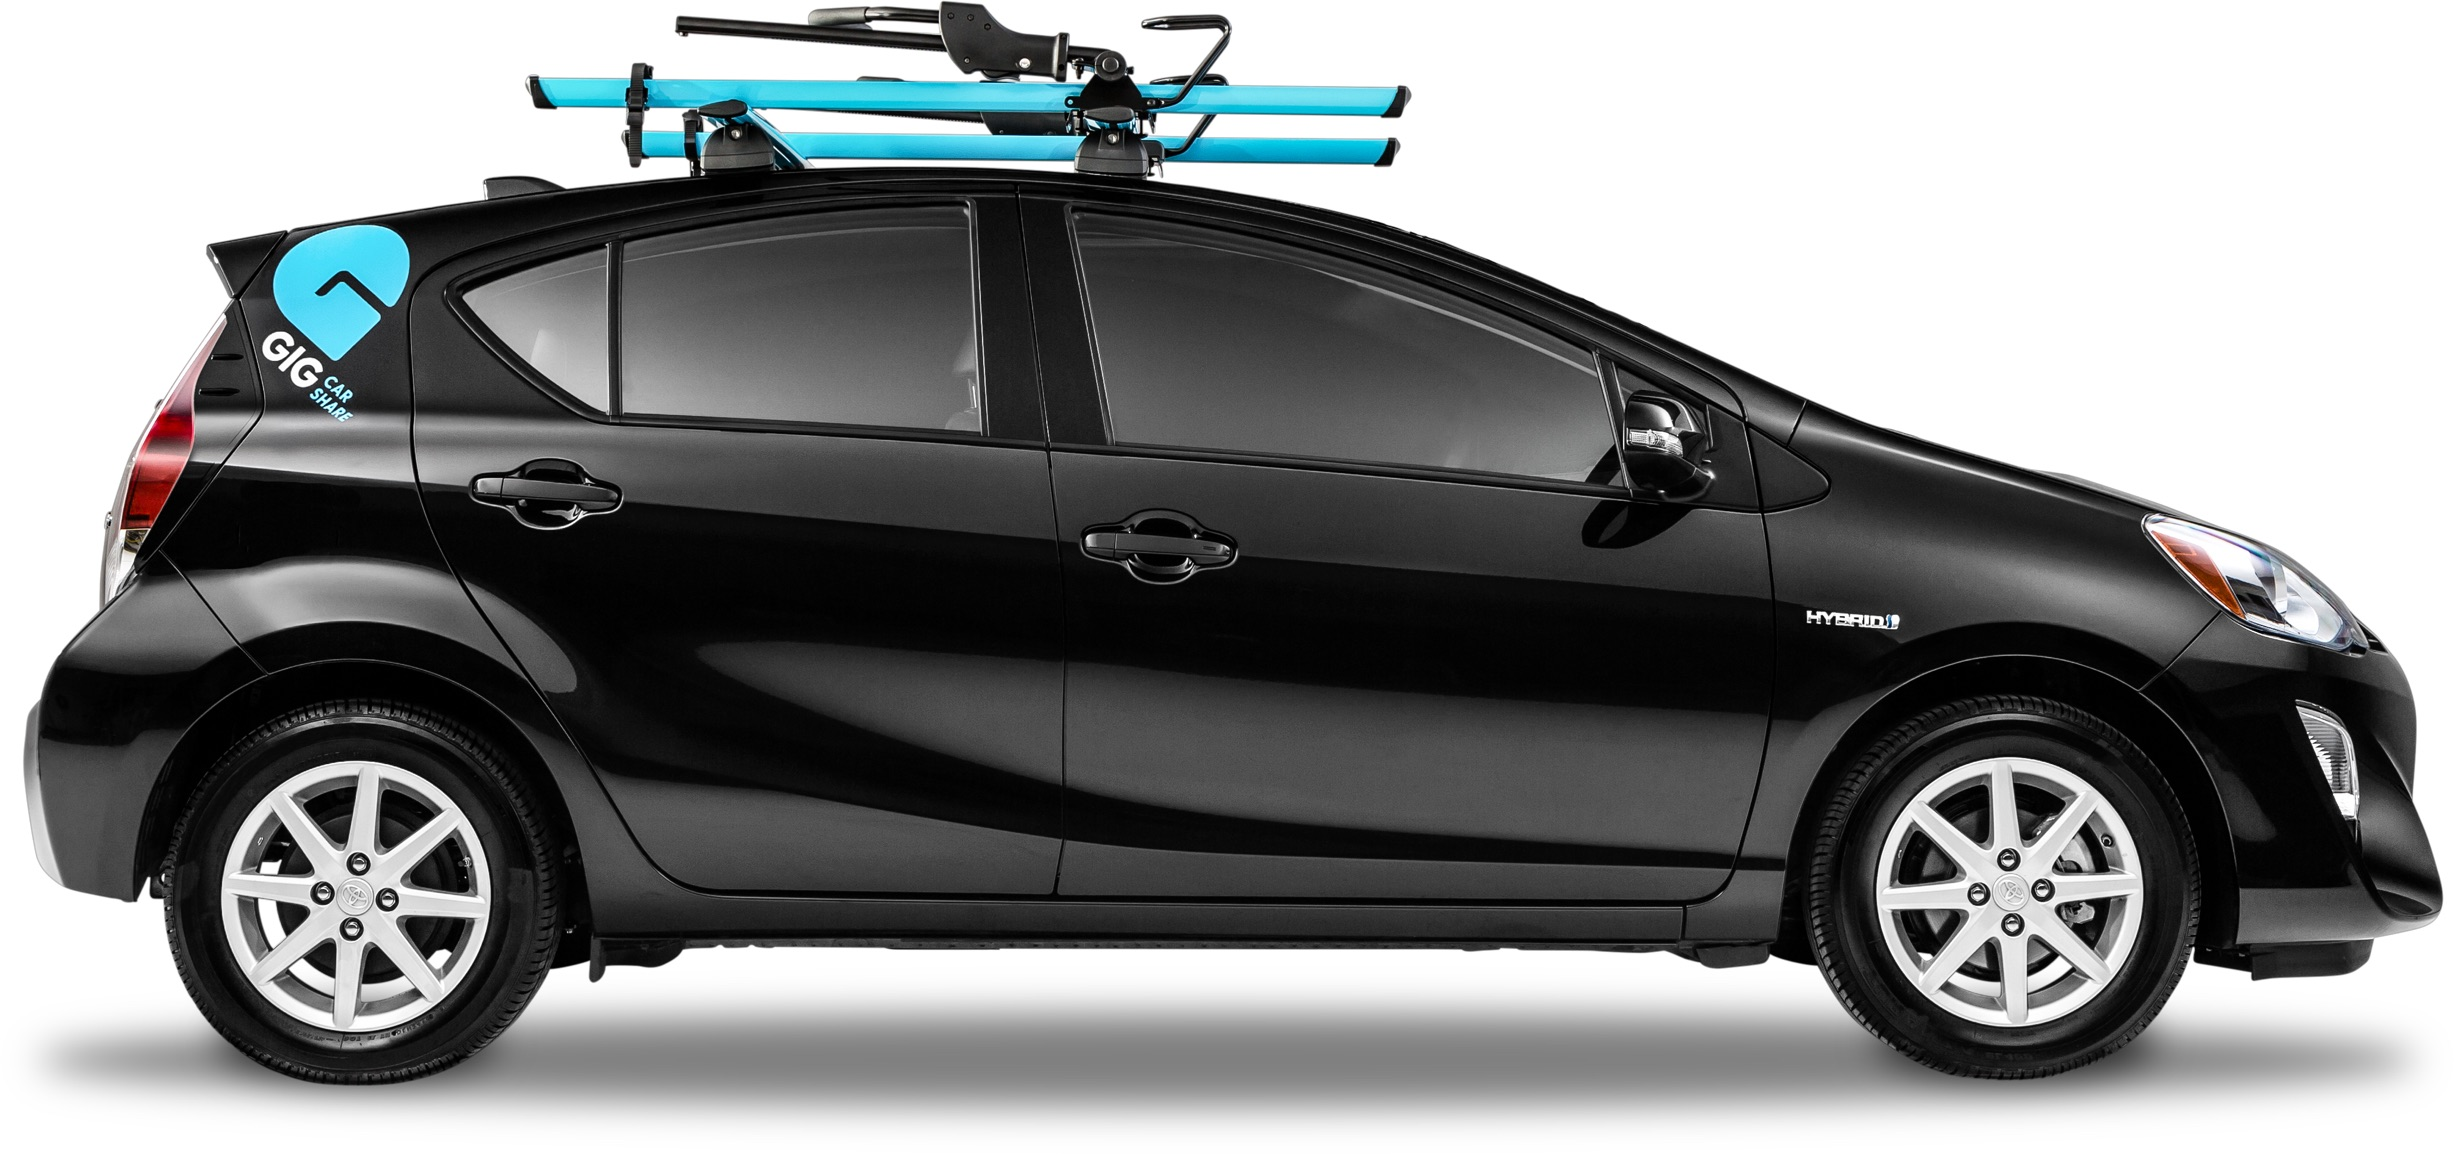 its easy to drive and easier on the environment gig has room for friends and cargo and is equipped with two bike racks so you can take your other wheels